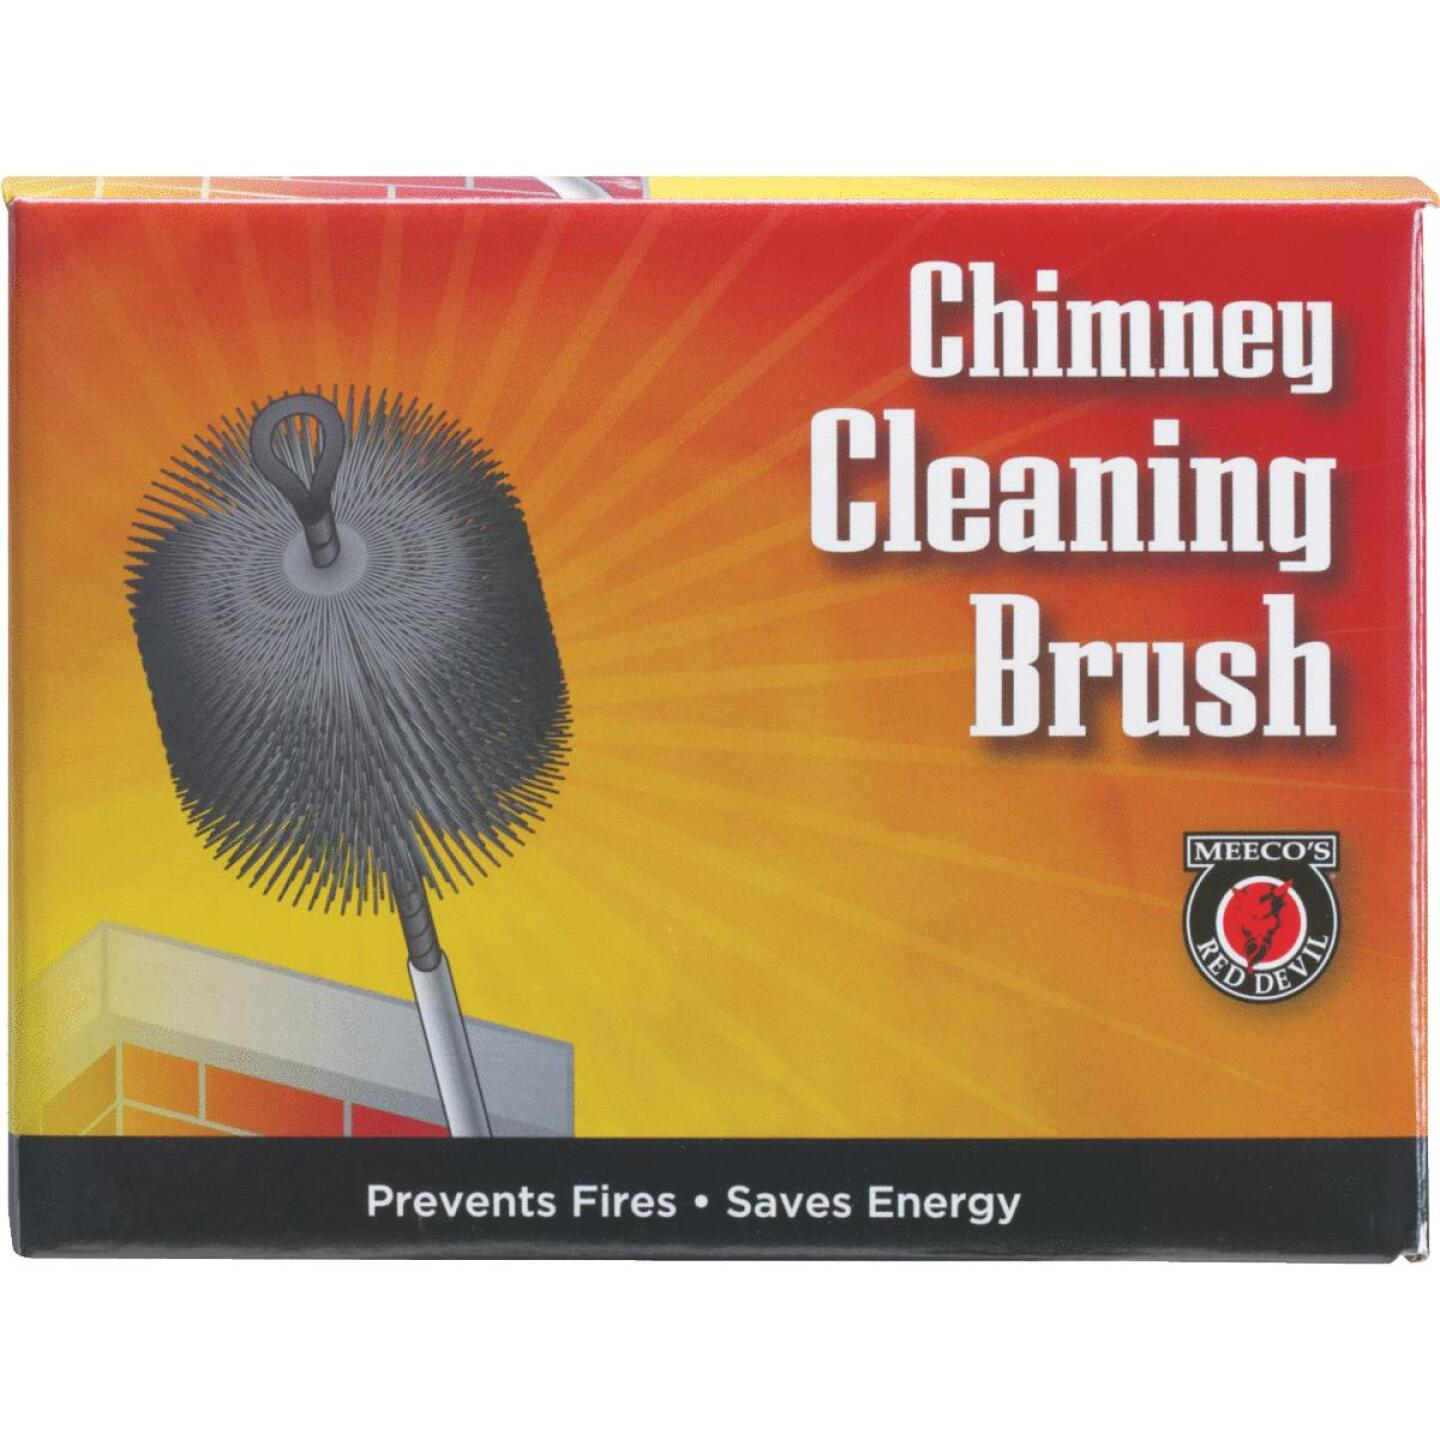 Meeco's Red Devil 8 In. Round Wire Chimney Brush Image 2